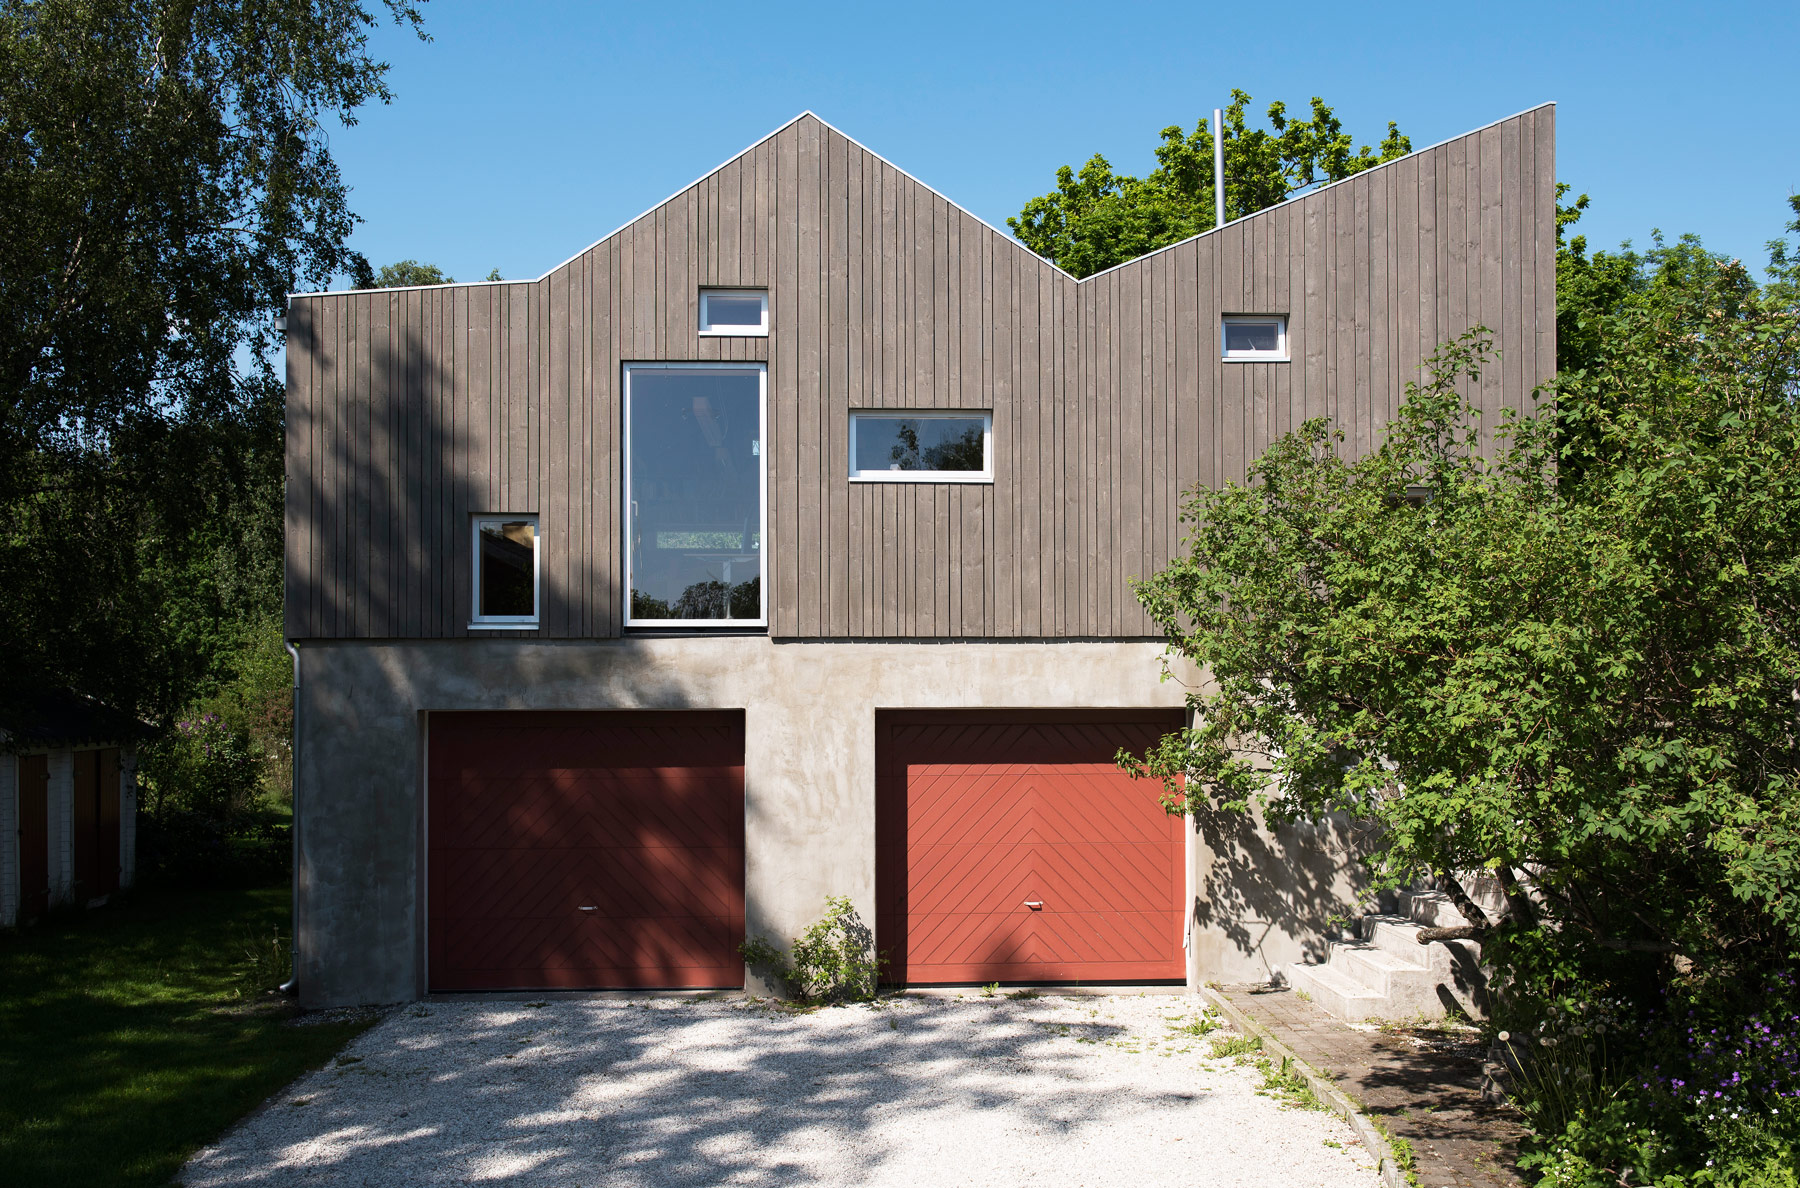 Vincenzo-Marchese-Petter-Nordahl-Kebony-Wood-Garage